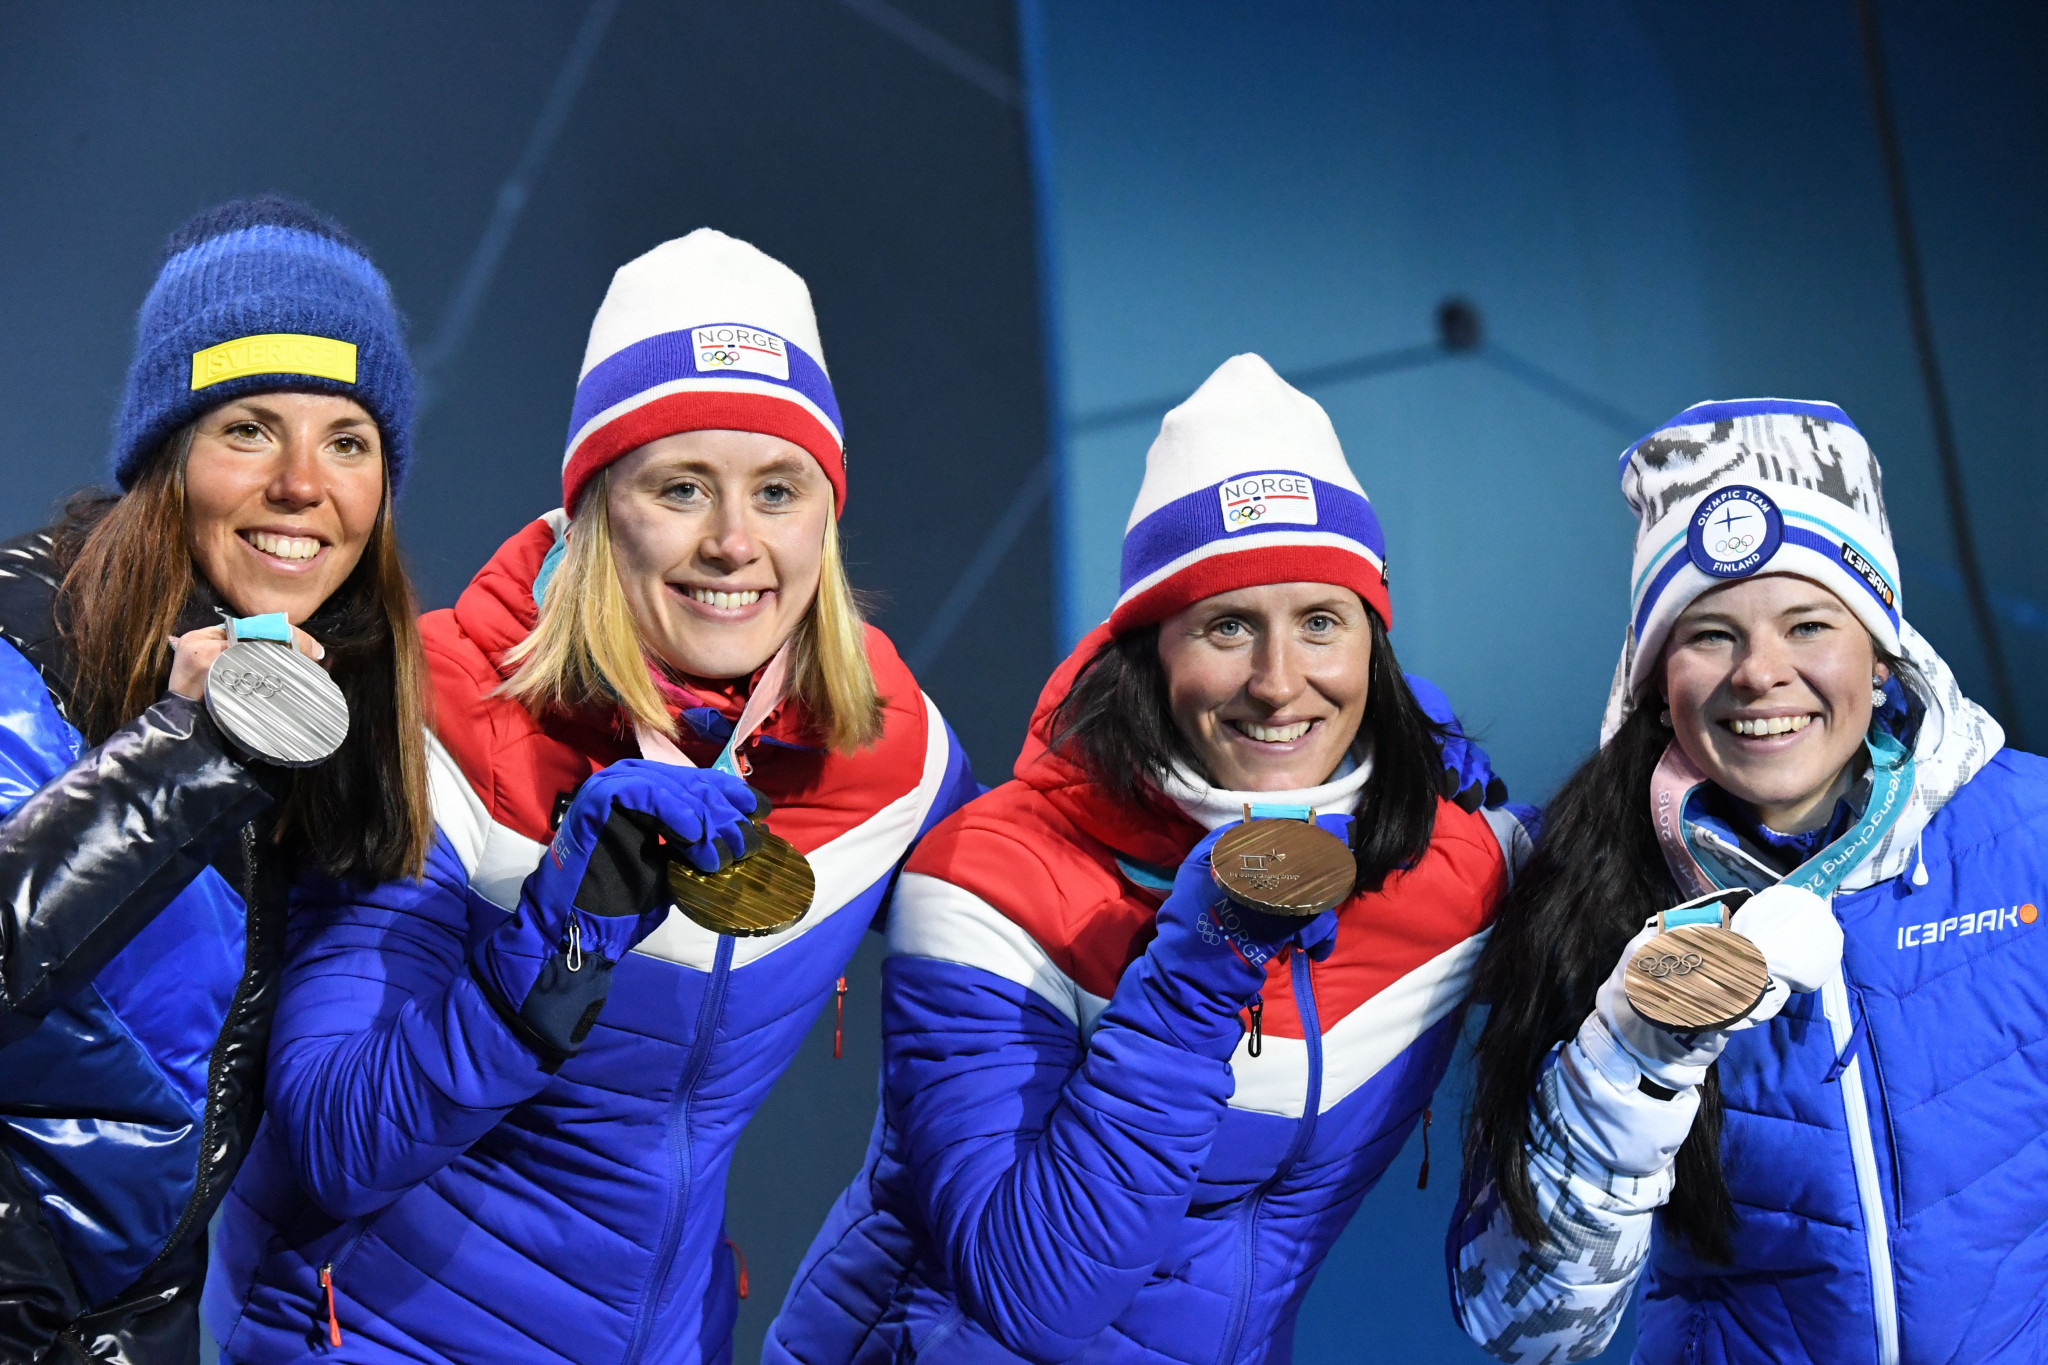 Ragnhild Haga claimed a dominant victory to top the podium ©Getty Images